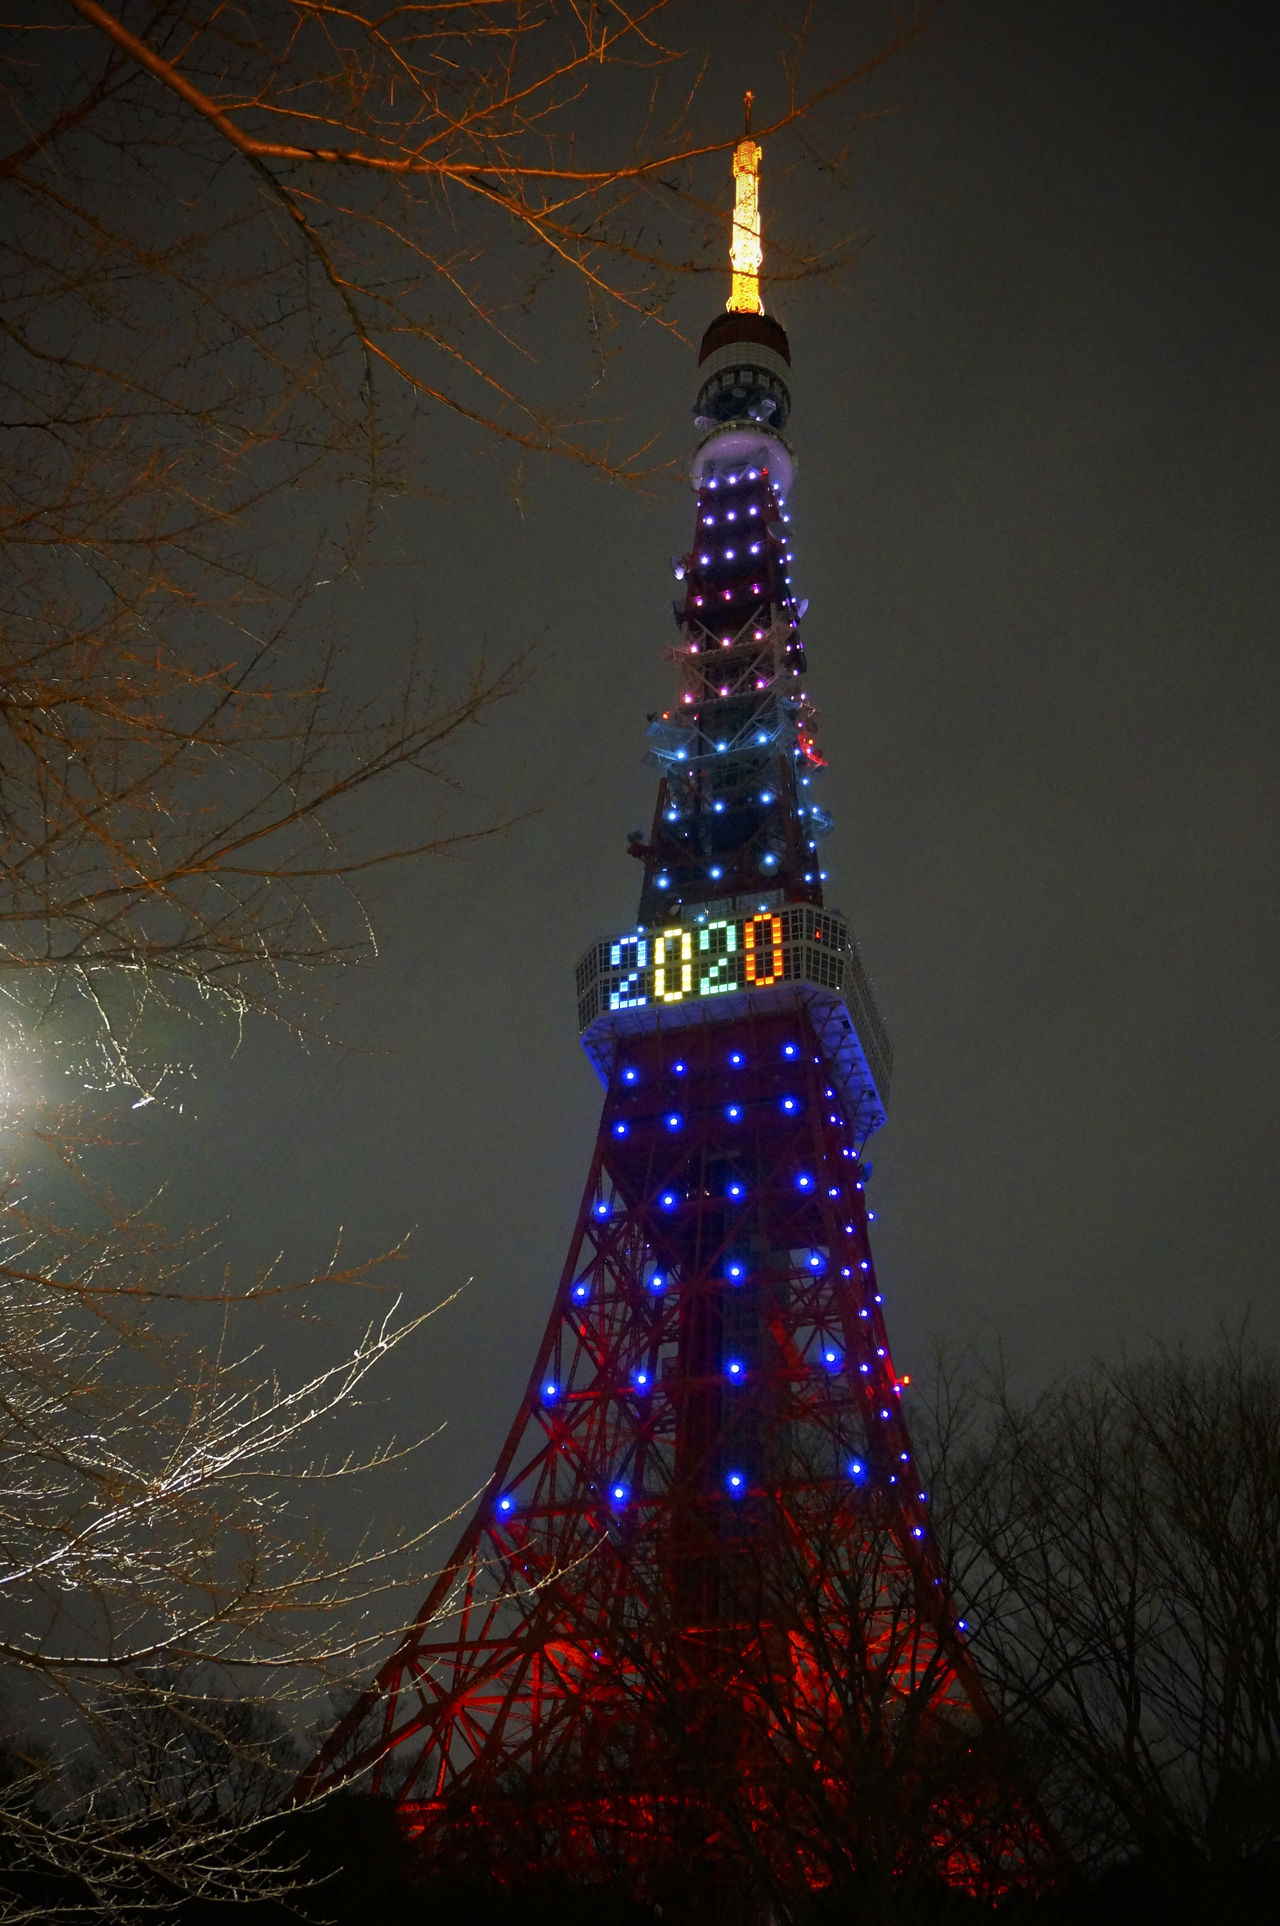 2013 2020 City Illuminated Night Olympic Outdoors Rainbow Rainbow Colors Sky Tokyo Olympic Tokyo Tower Tower オリンピック 増上寺 東京オリンピック 東京タワー